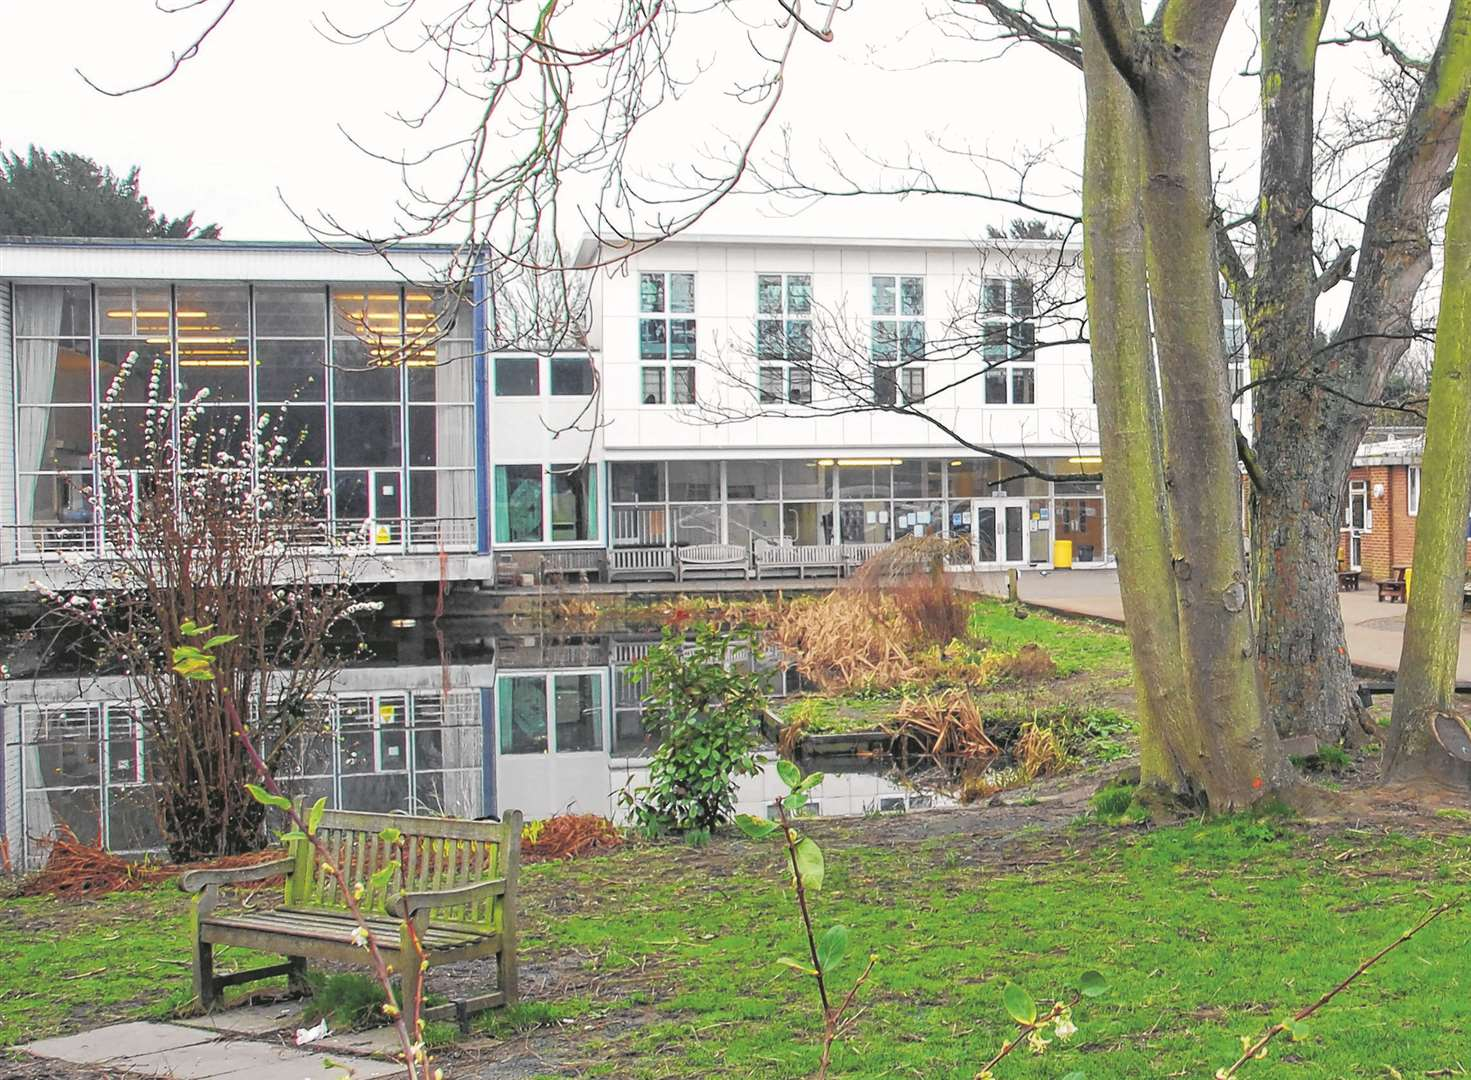 Renewed hopes of new town grammar school